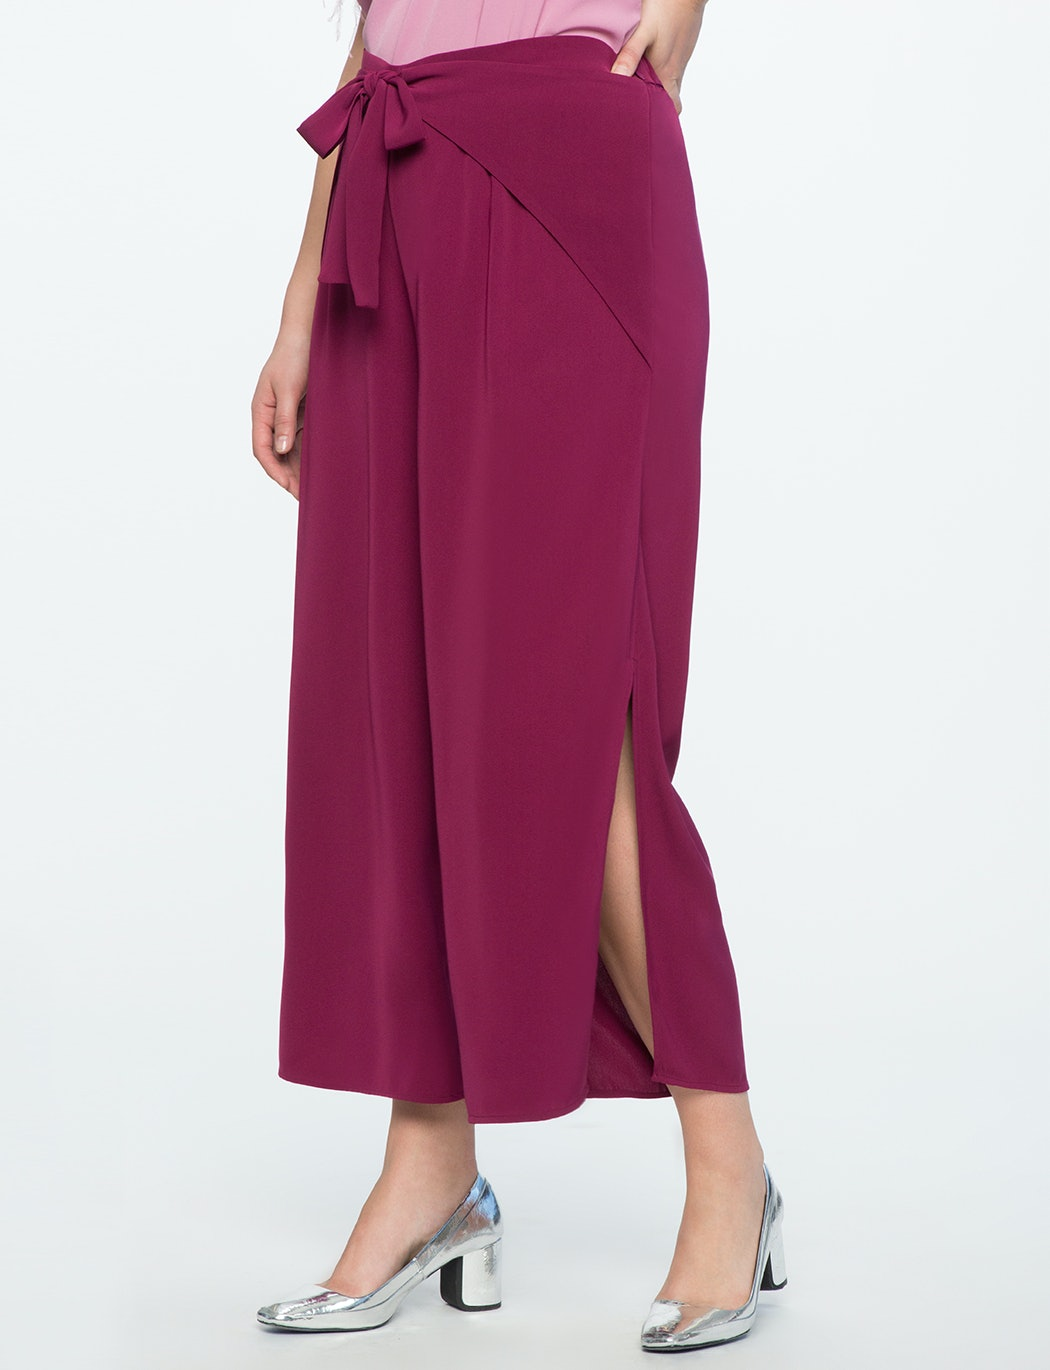 37 Plus Size Cropped Wide Leg Pants Thatll Make Your Summer To Fall 10 Jeans Lover Transition A Breeze